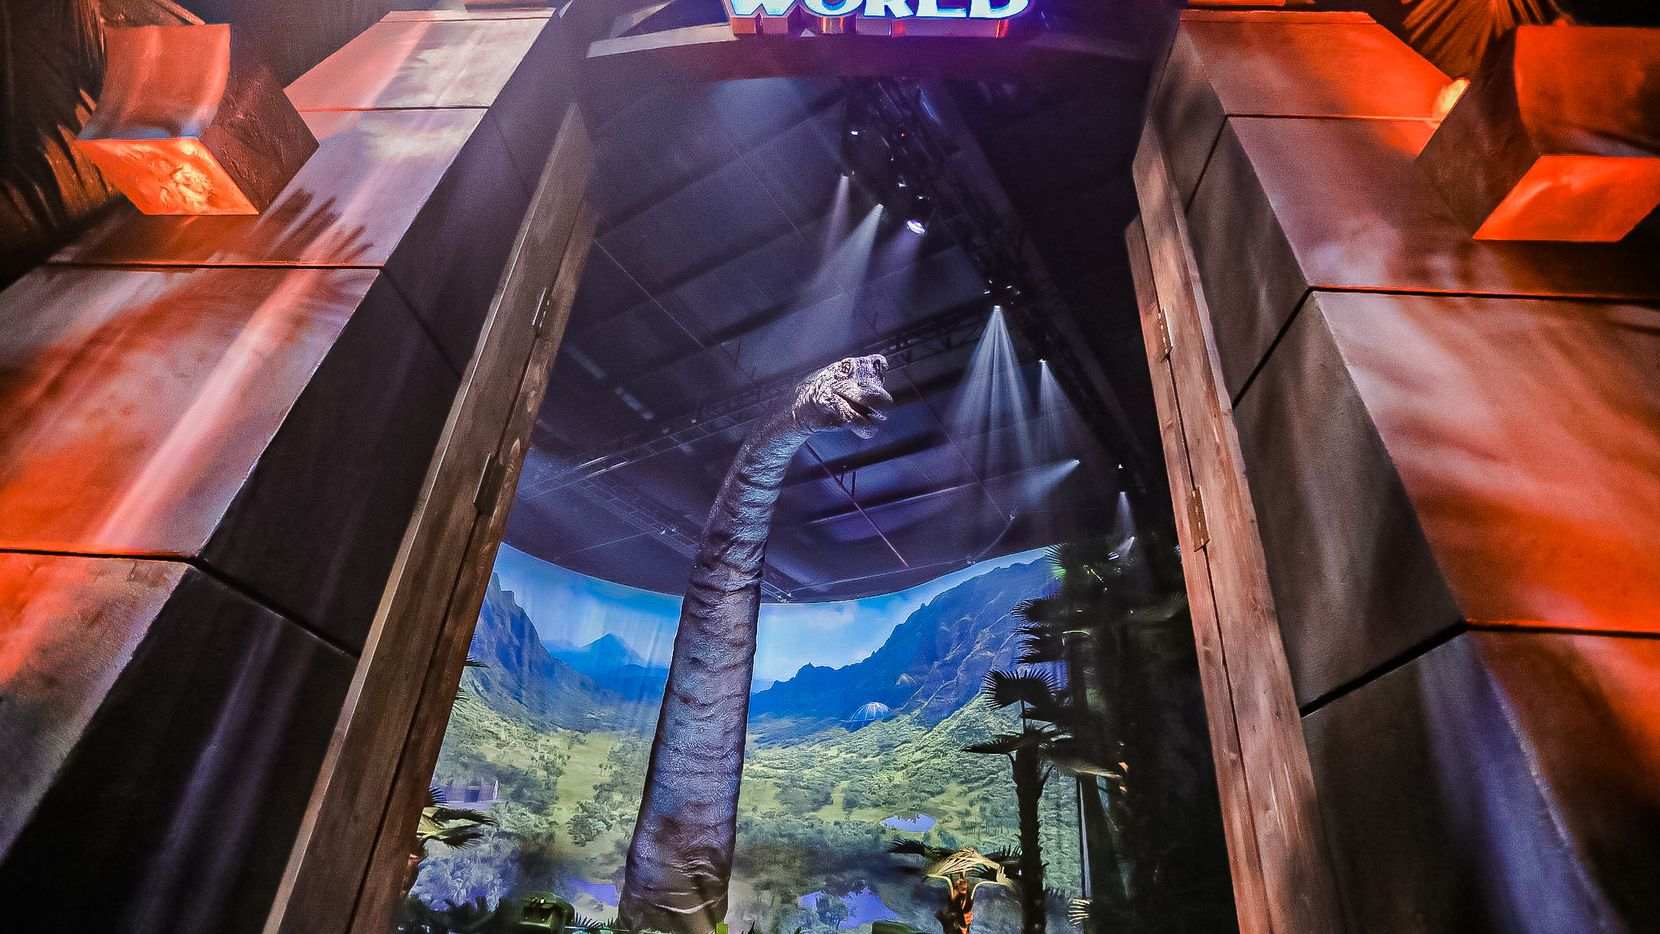 Visitors to Jurassic World: The Exhibition will enter through a gate inspired by the movie franchise.